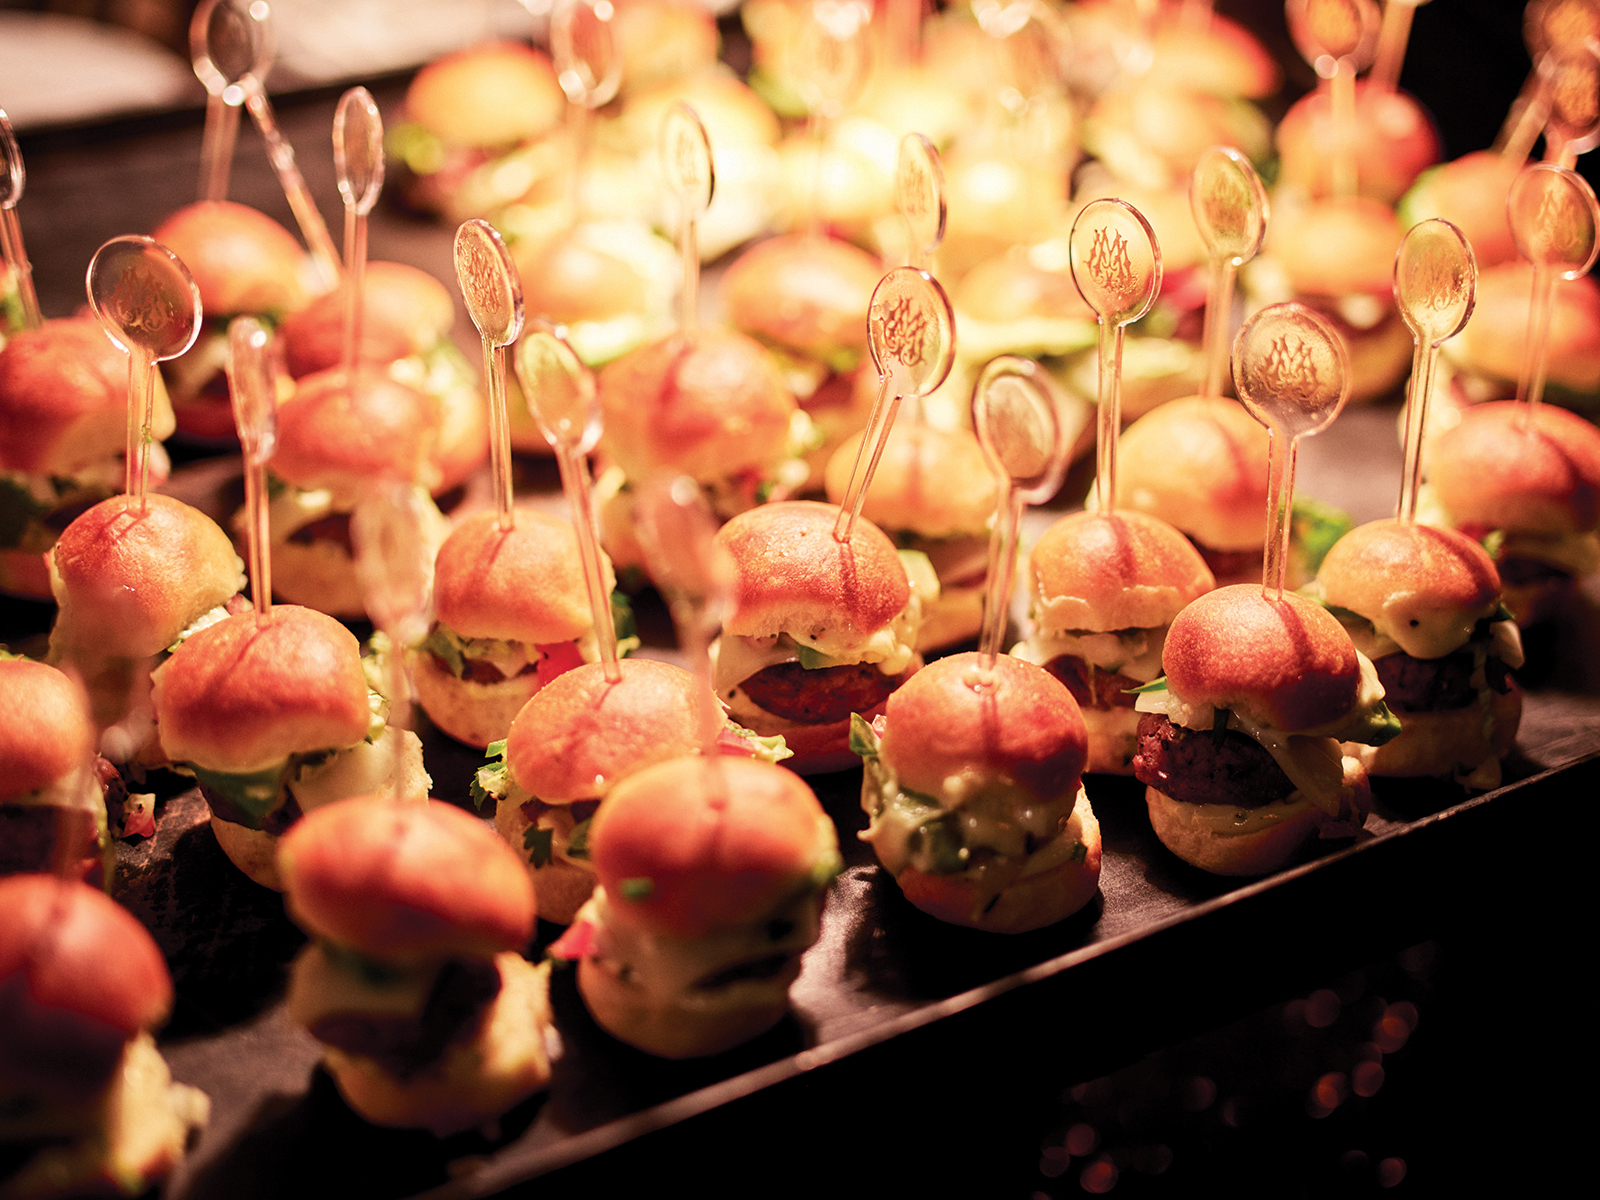 sliders - appetizers - catering